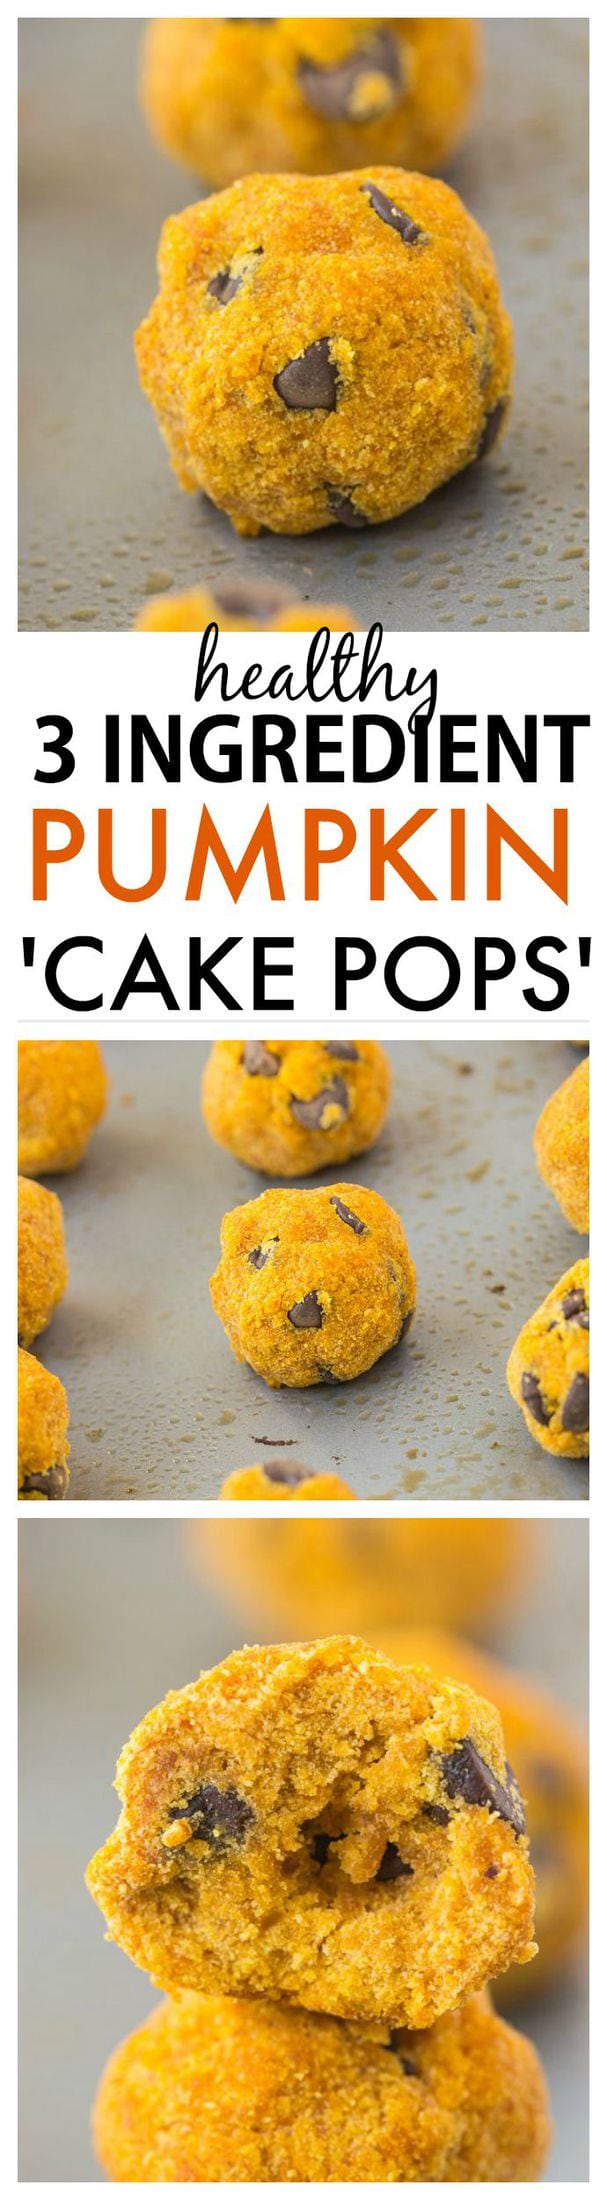 Healthy 3 Ingredient Pumpkin Cake Pops- Three easy ingredients and 10 minutes- You be in control of the texture- Soft or dense! High in fiber and very low in fat! {Vegan, gluten-free + paleo friendly} - thebigmansworld.com